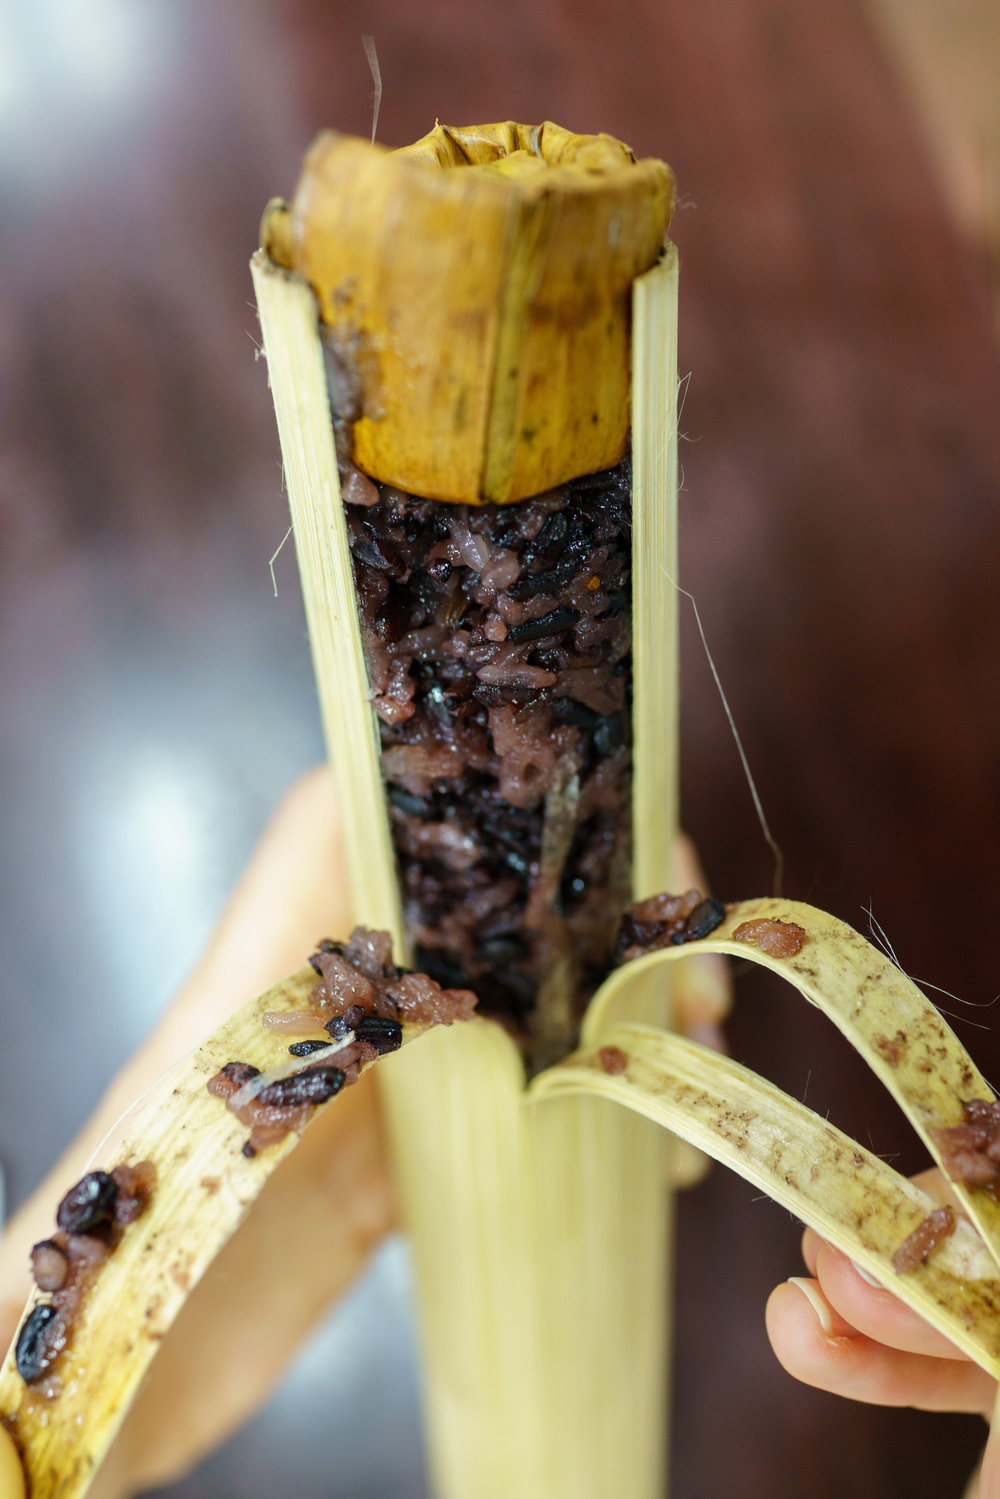 The bamboo is pulled back to reveal sweet black sticky rice